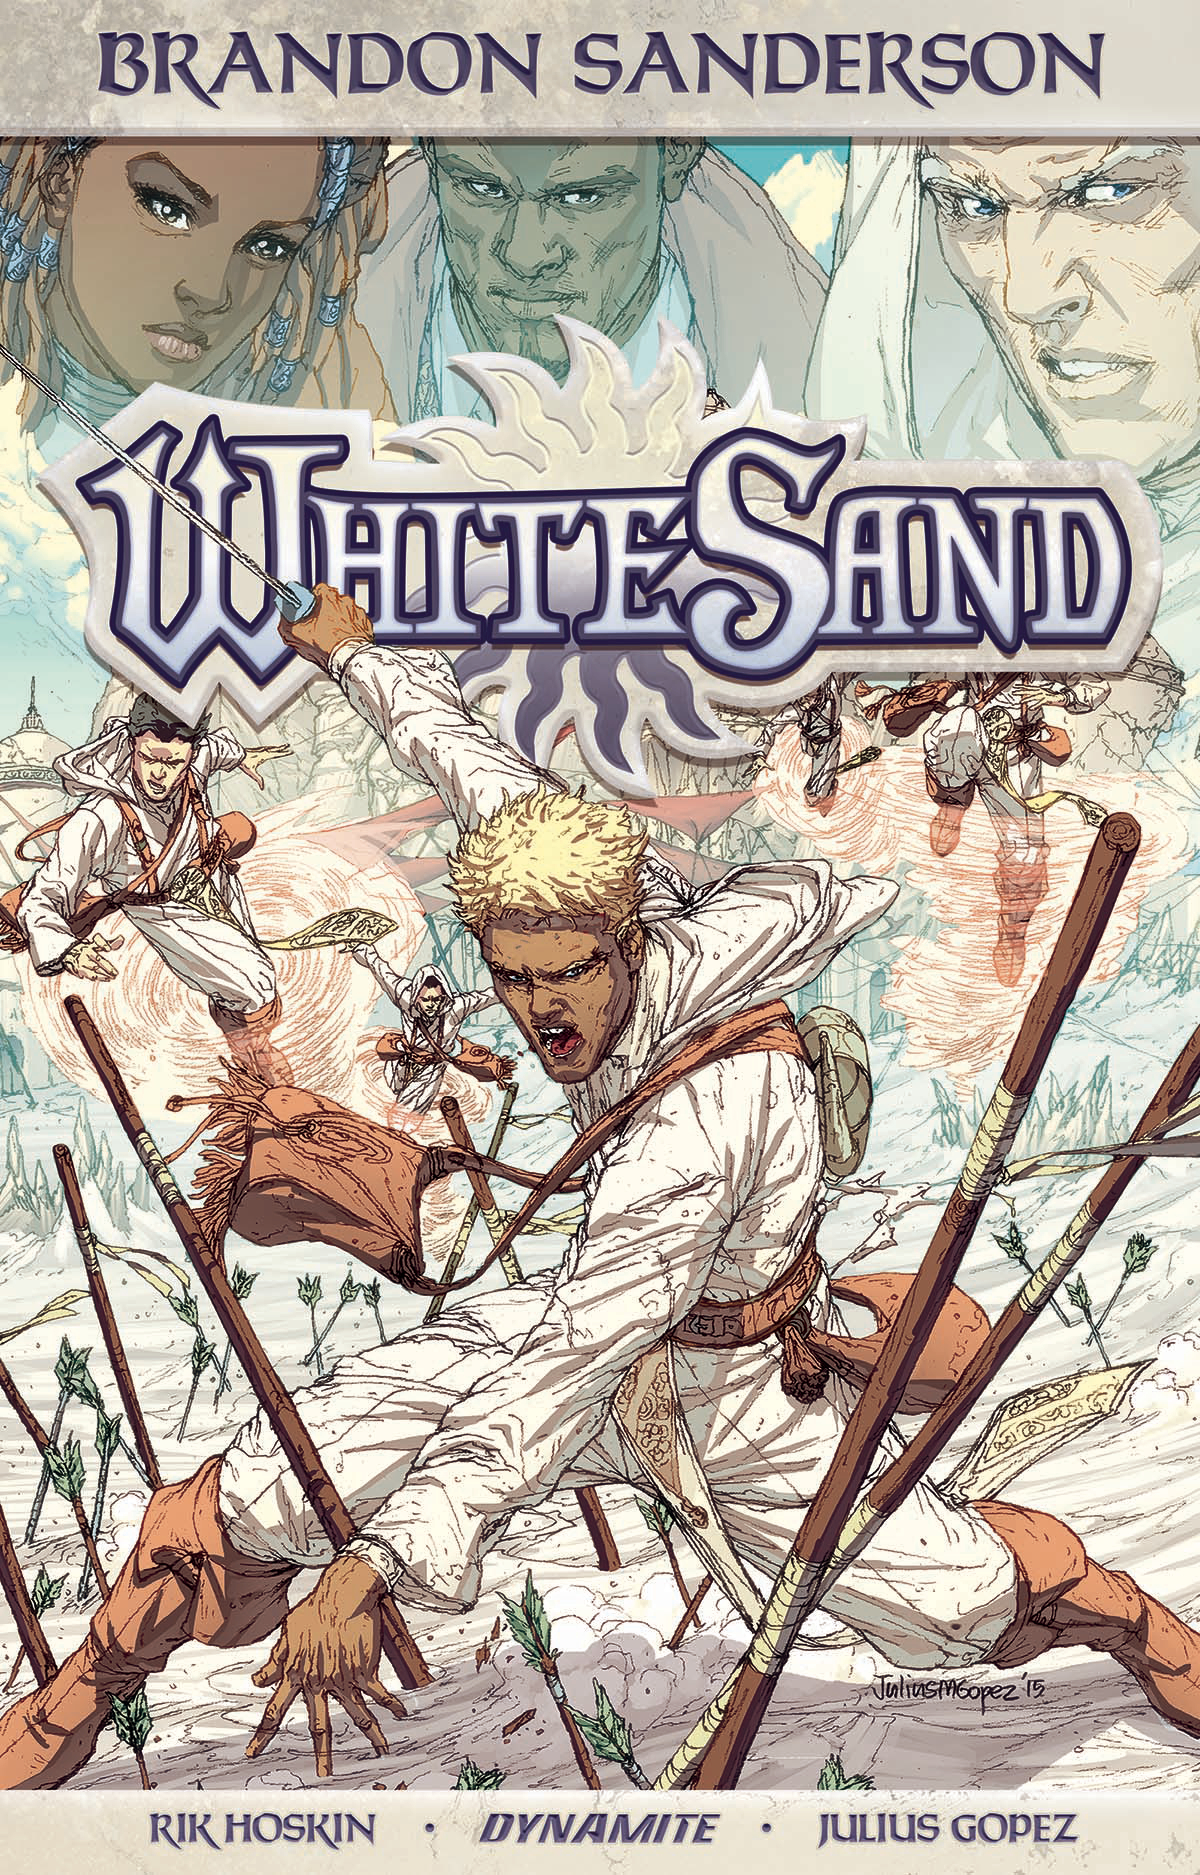 BRANDON SANDERSON WHITE SAND TP VOL 01 (JUL171745)